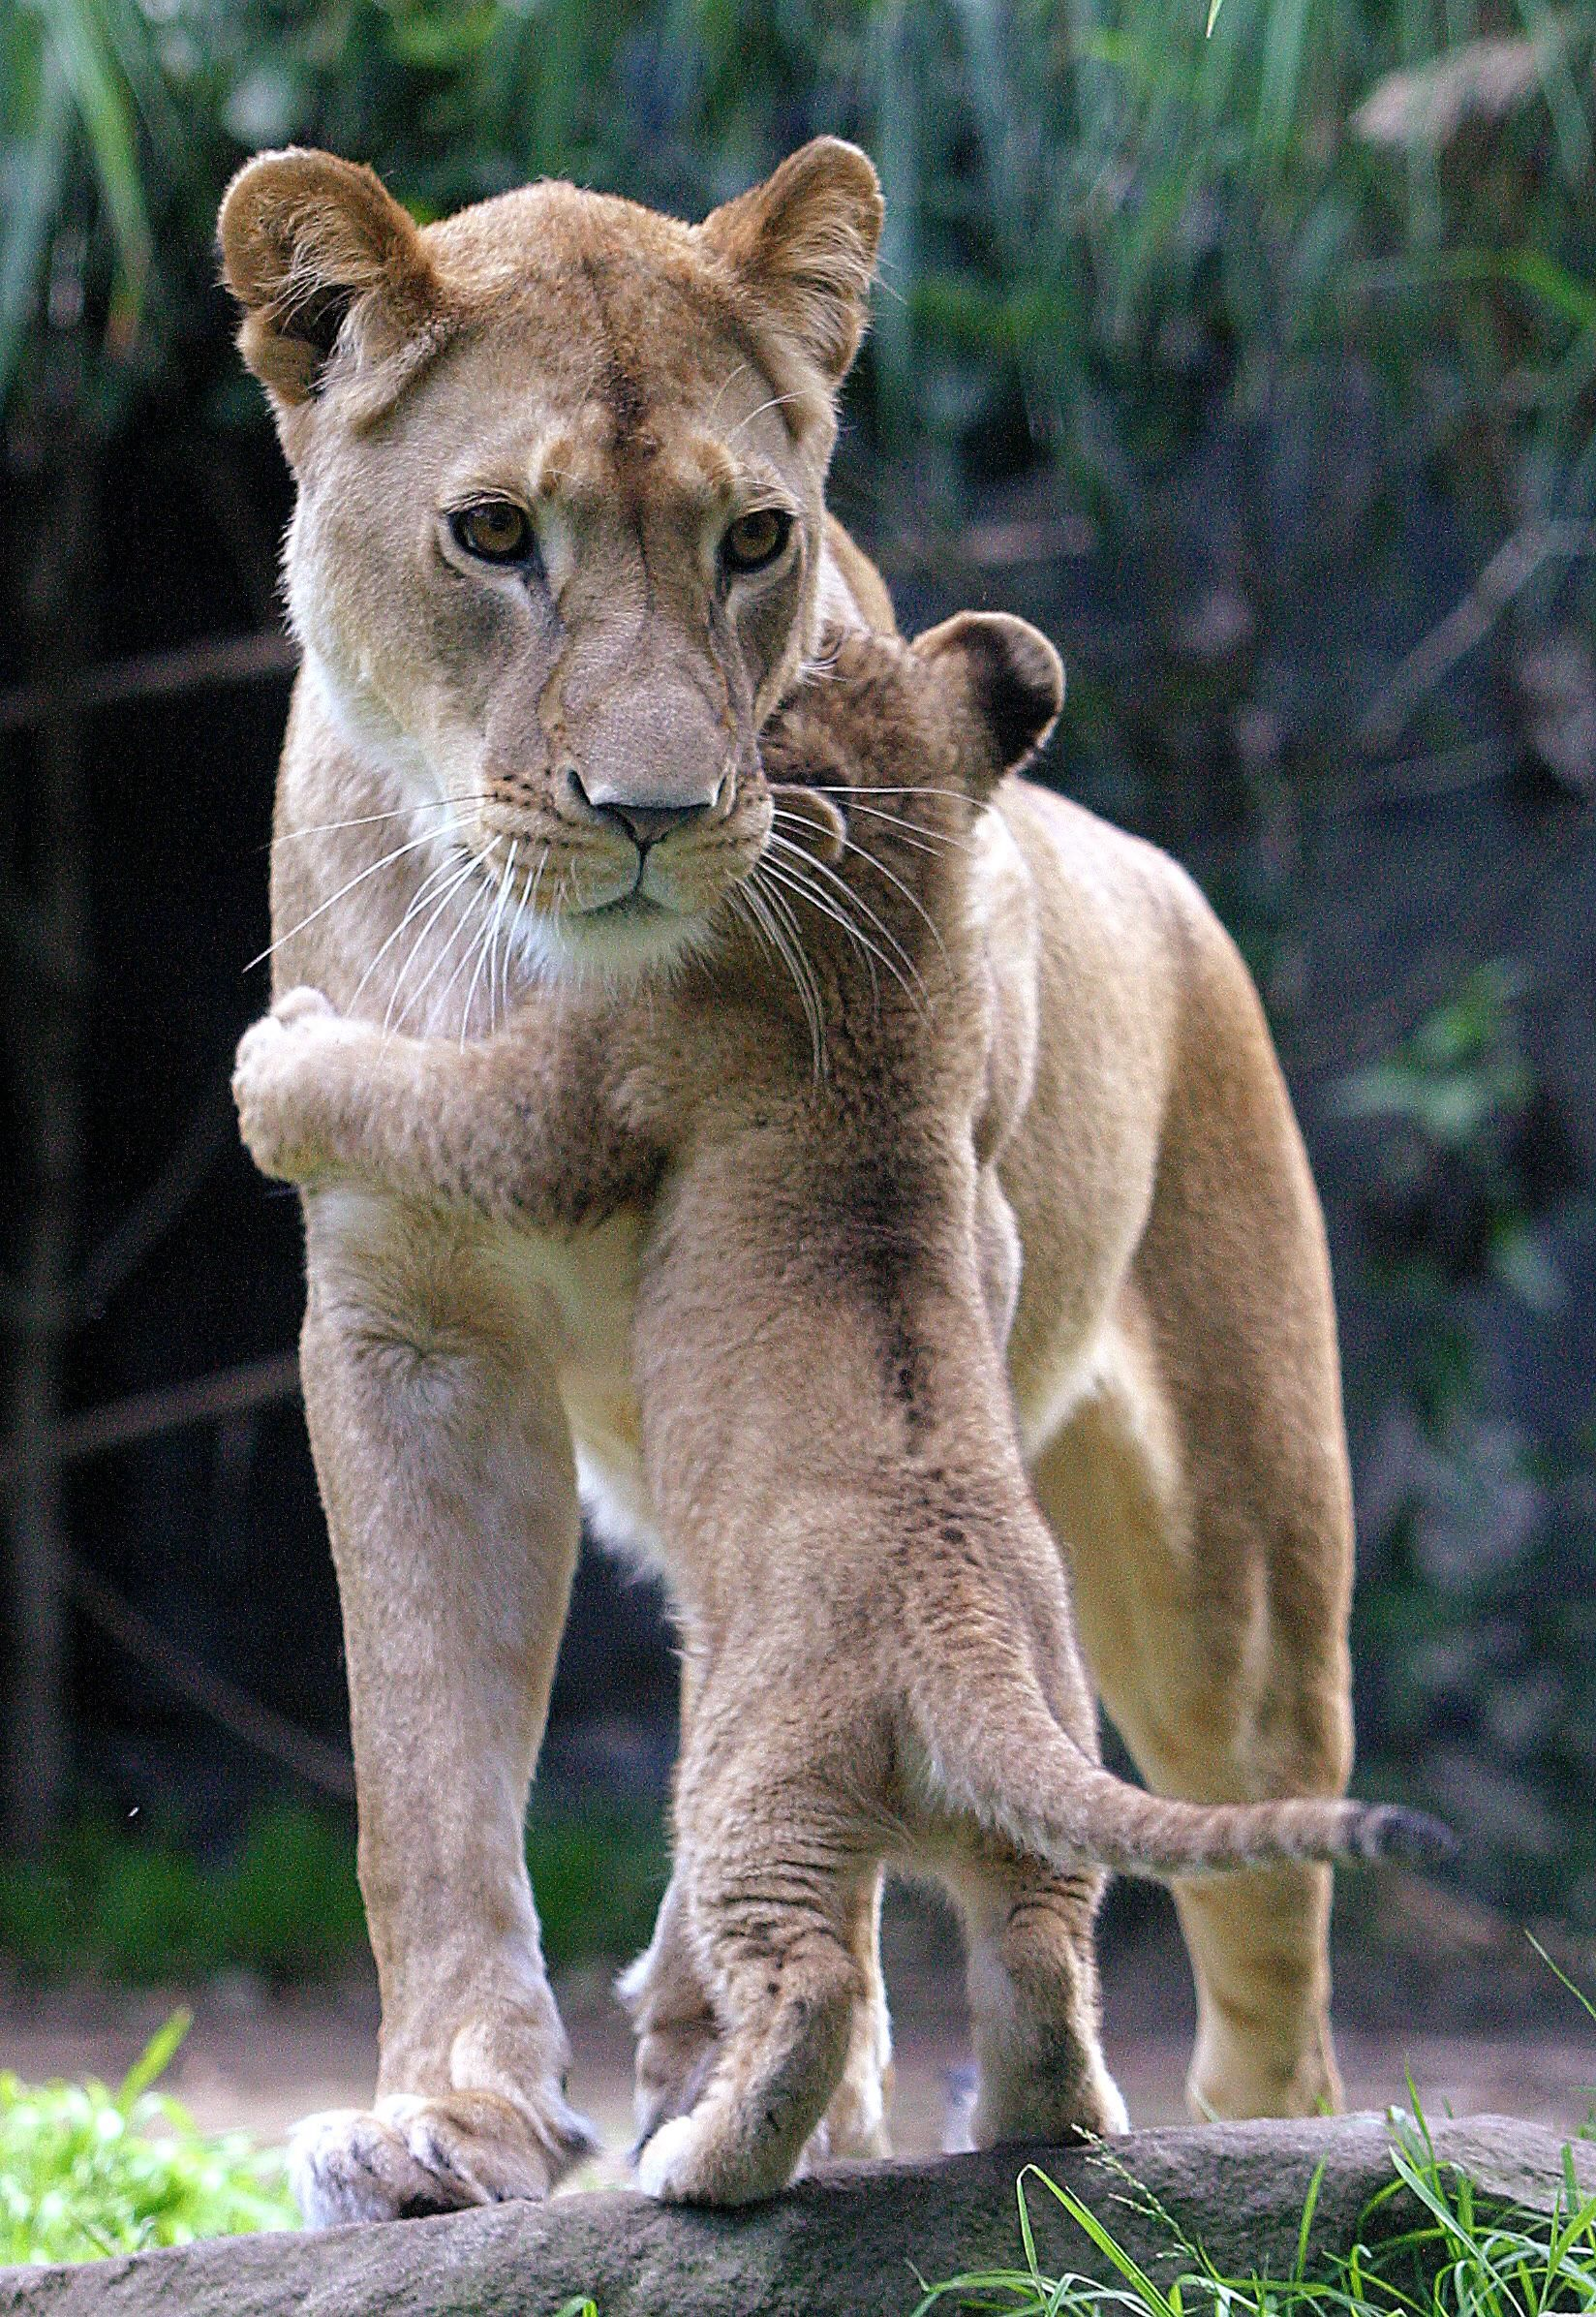 """9 week old African lion cubs (Panthera Leo) hugs it's mother """"Kuchani"""" at Taronga Zoo in Sydney, Australia - http://www.flickr.com/photos/9758352@N07/1943438934/"""